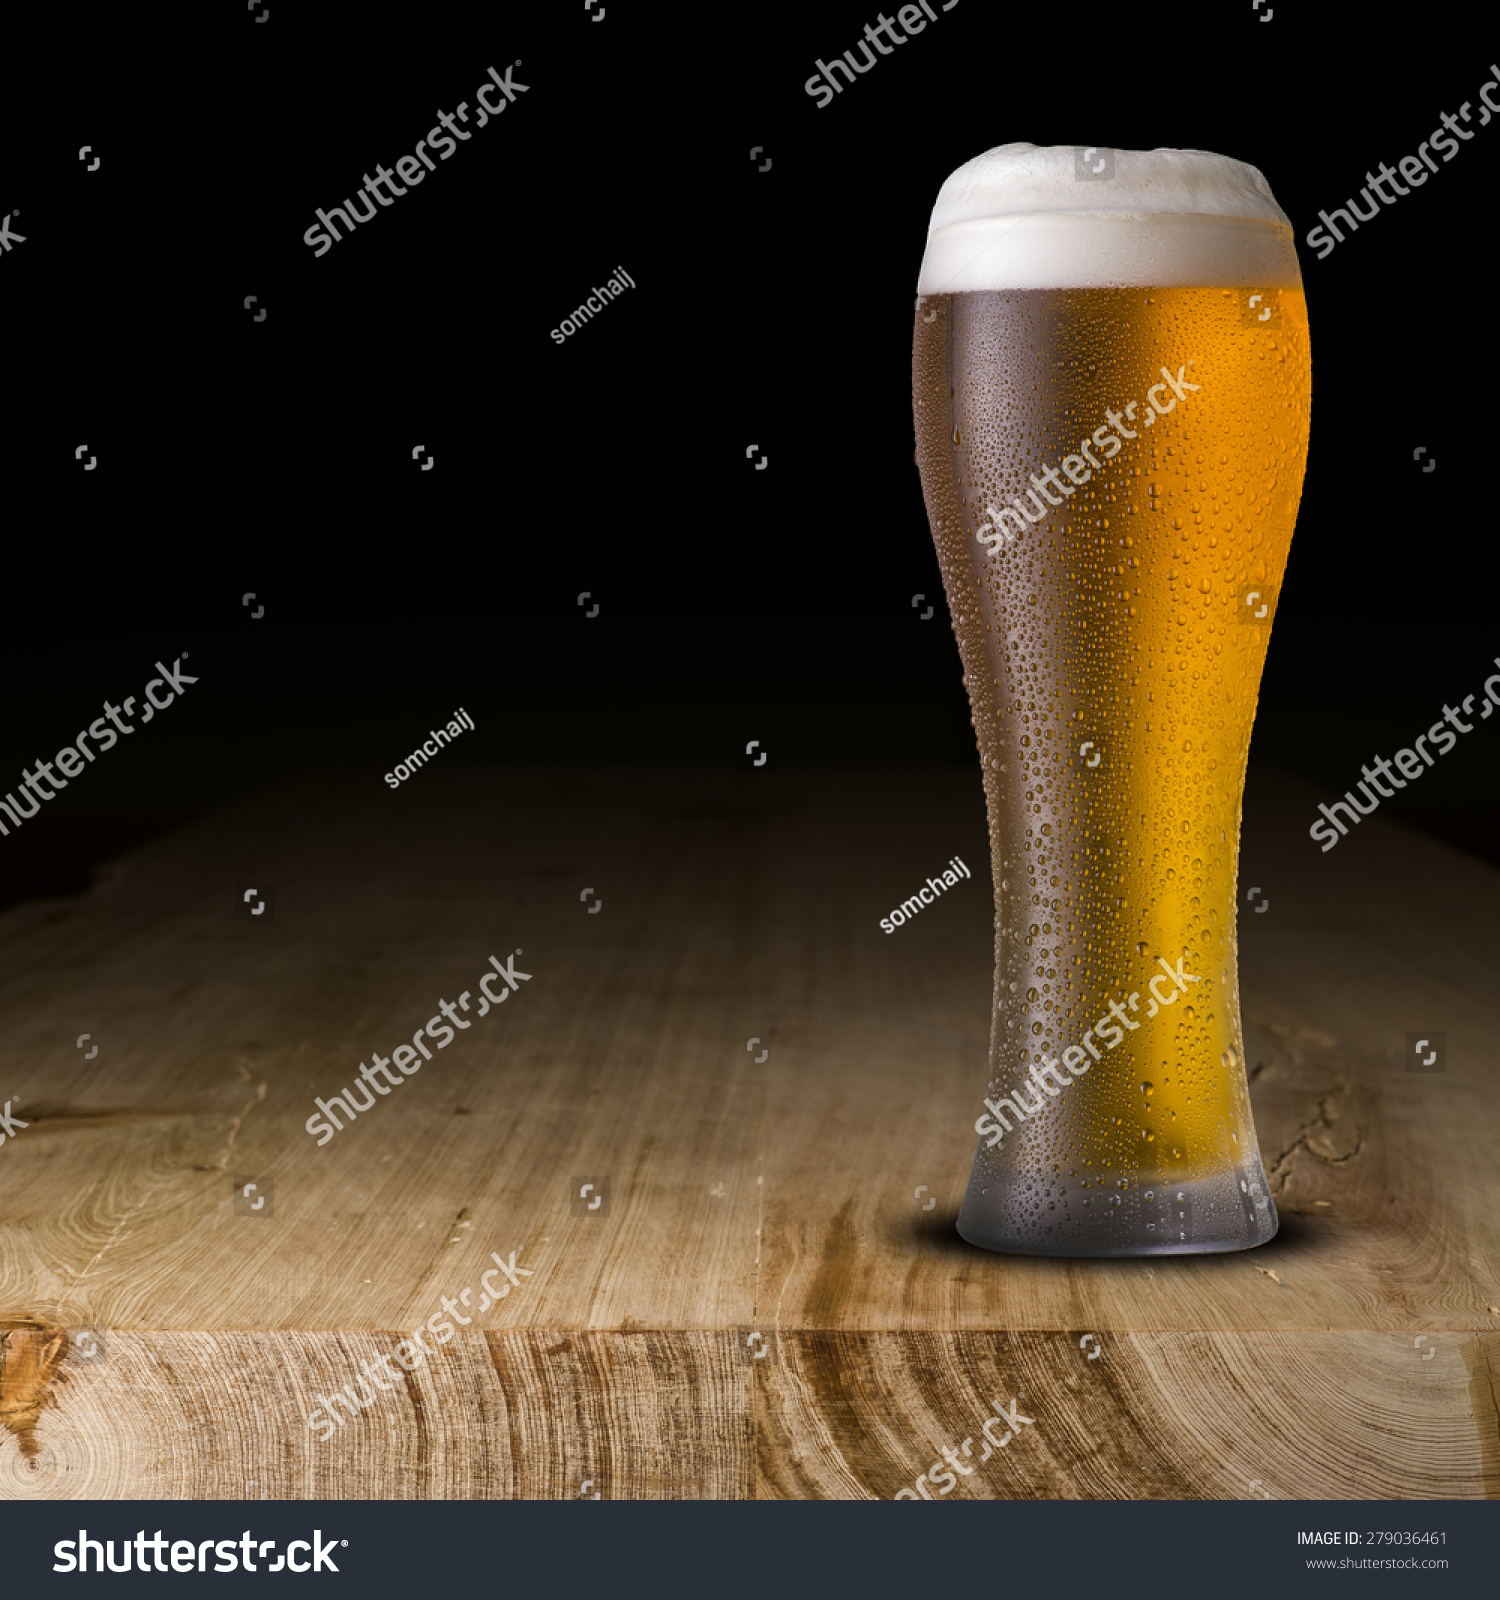 glass beer on wood - photo #5